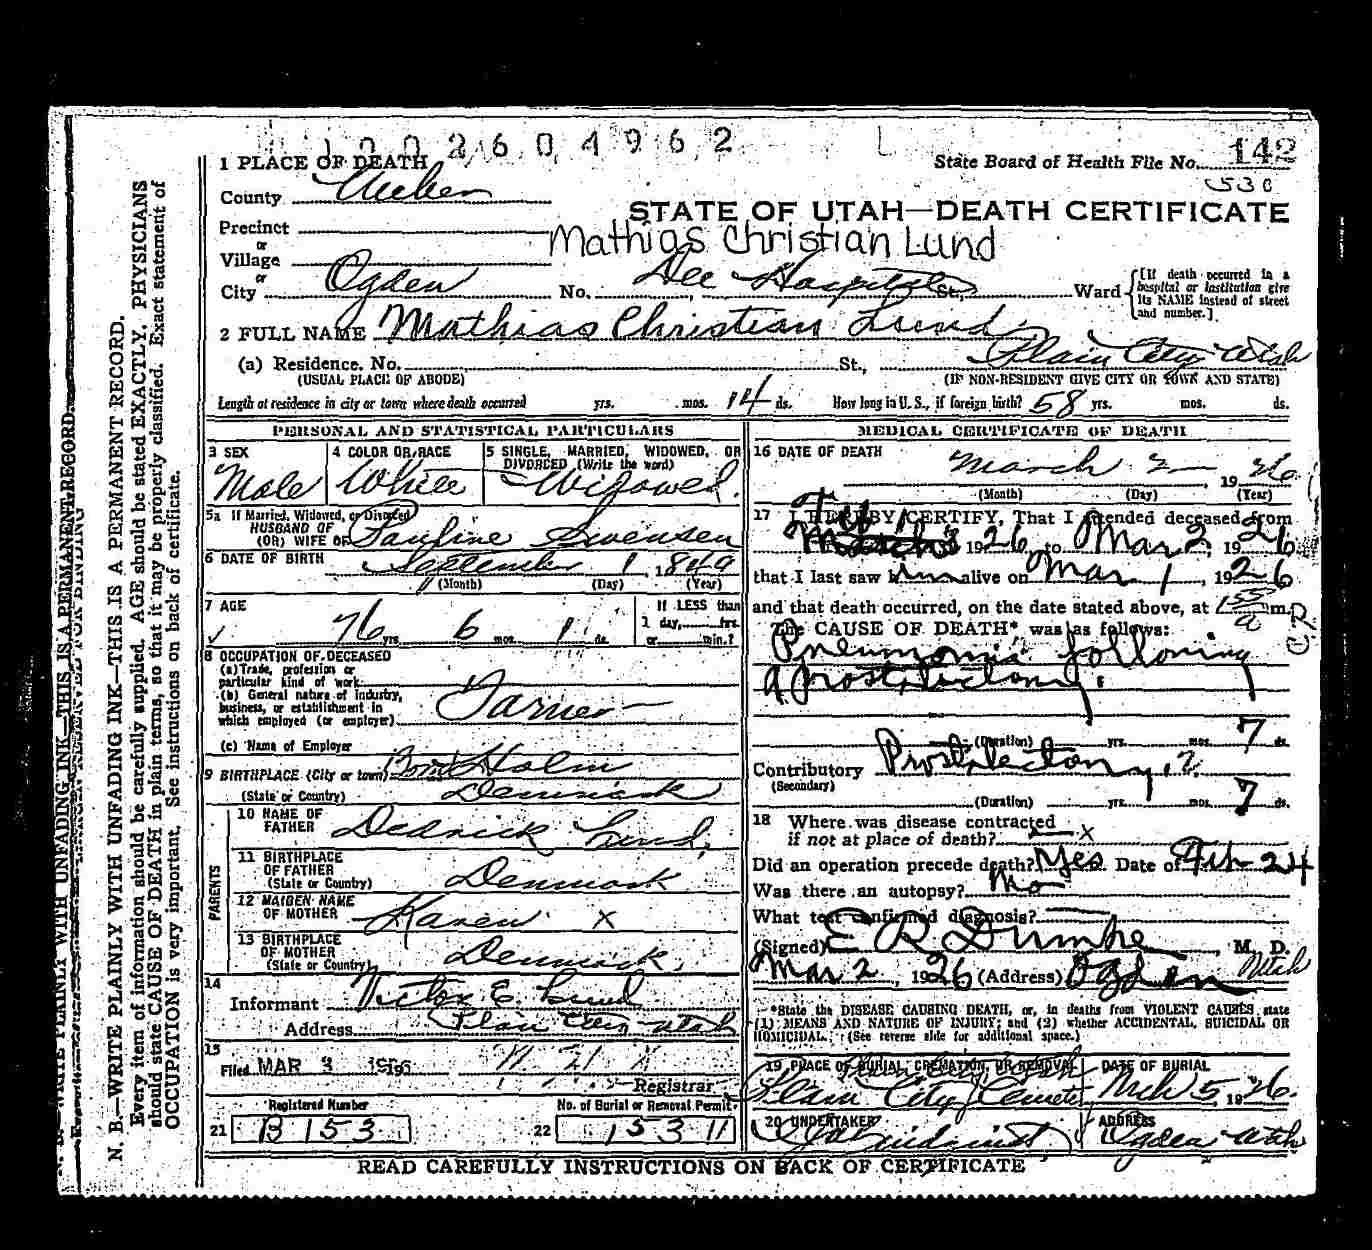 Lundology Mathias Christian Lund Death Certificate